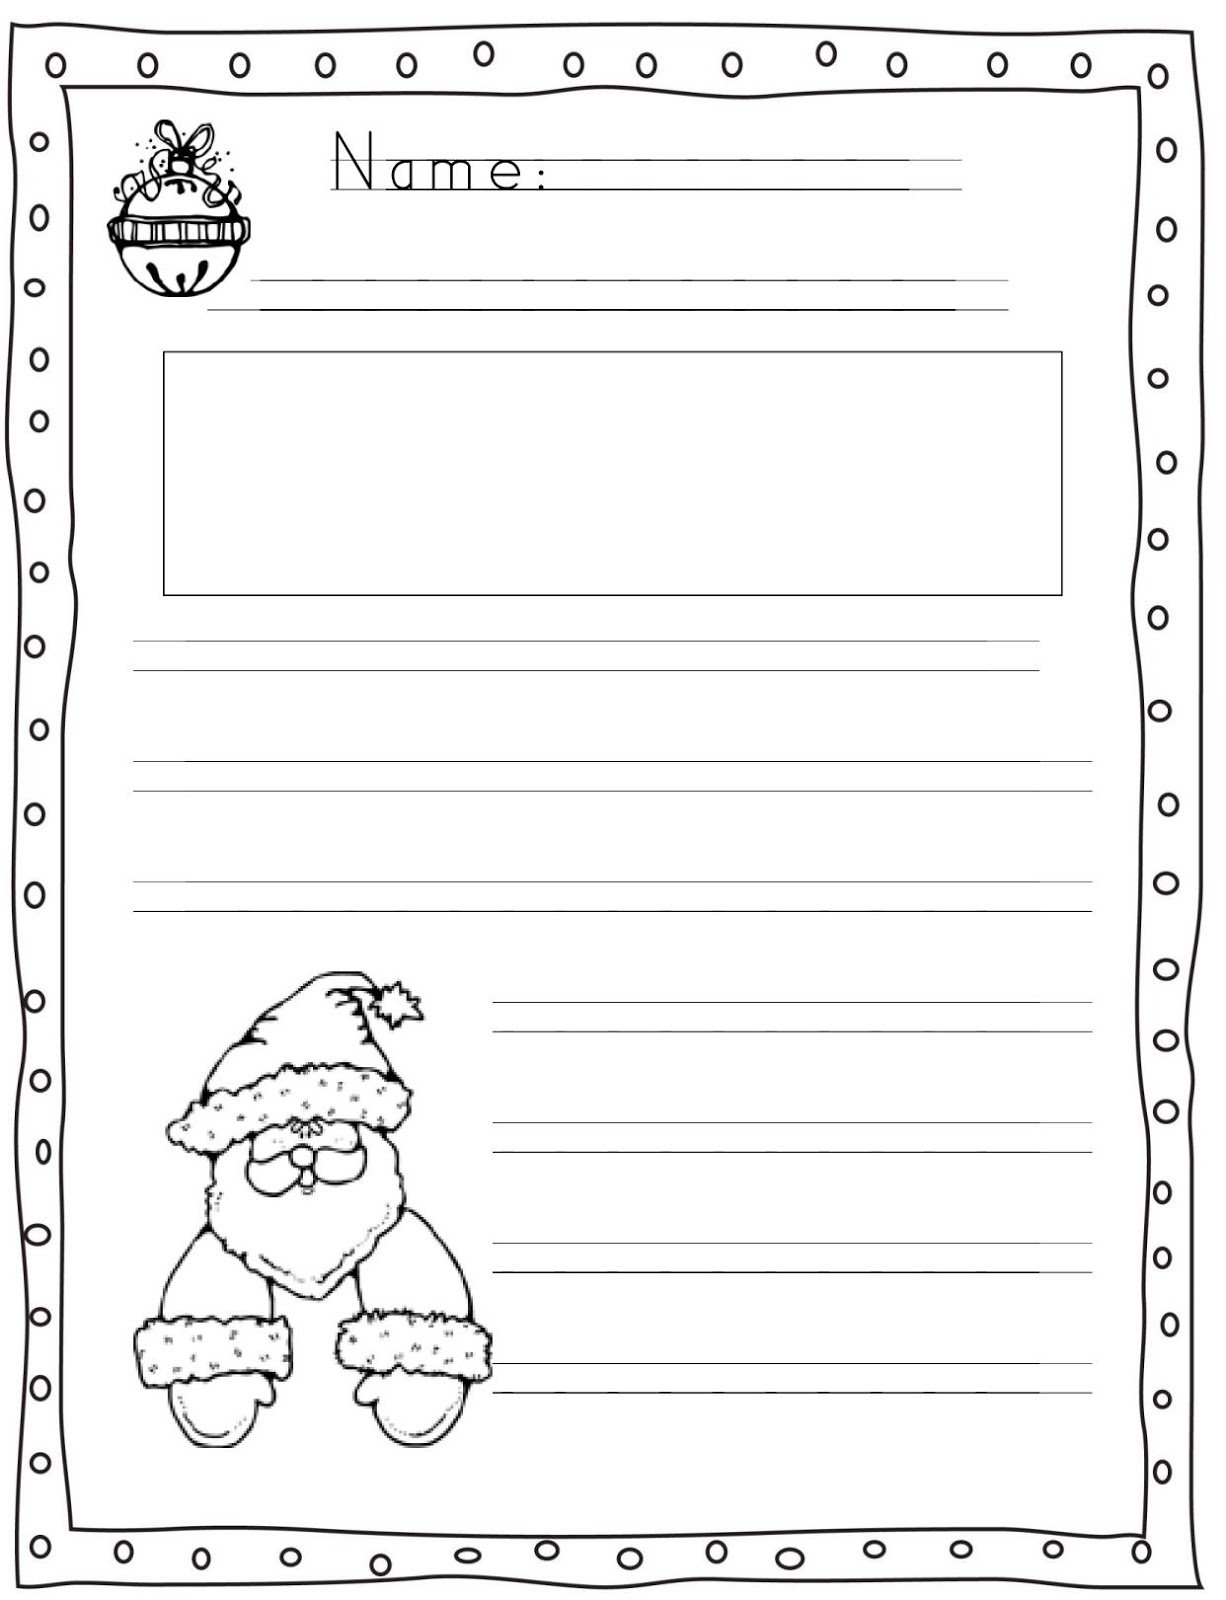 Handwriting without tears worksheets printable free for Handwriting without tears letter templates